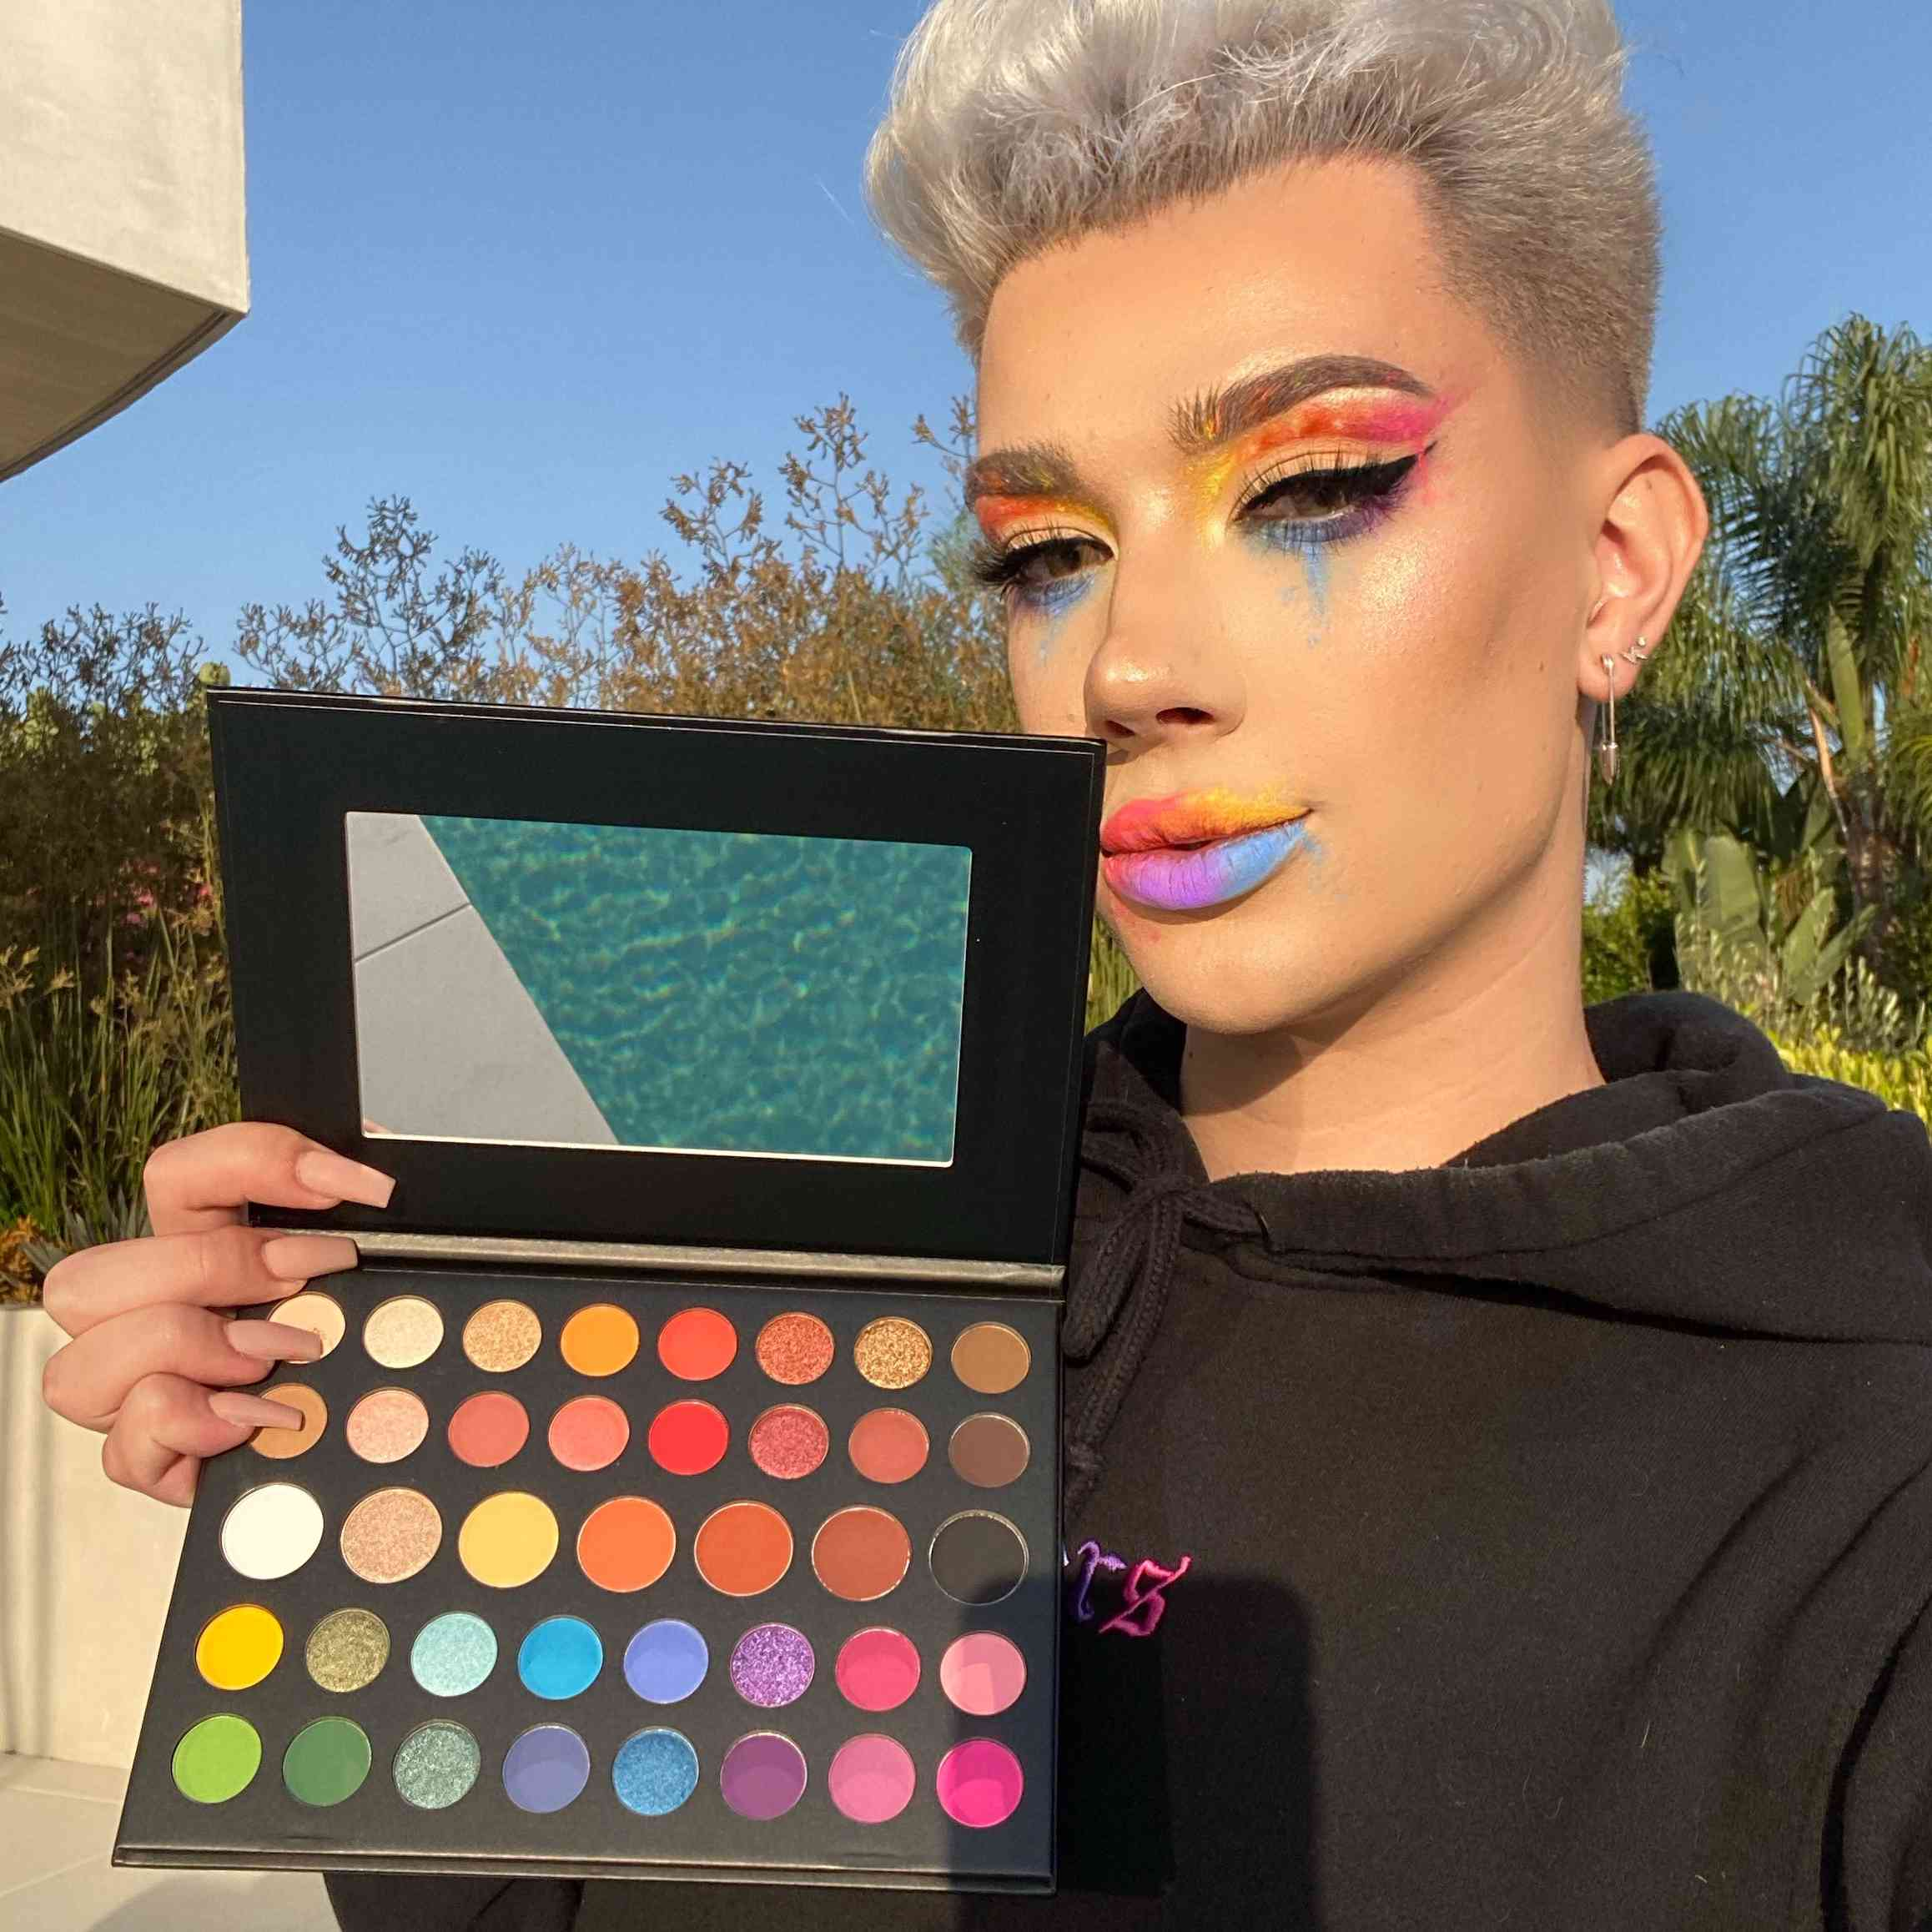 Exclusive James Charles On De Stressing Confidence And The Tatcha Product He Loves Orphaned at a young age and scarred from methuen home's mistreatment, she is … james charles on de stressing